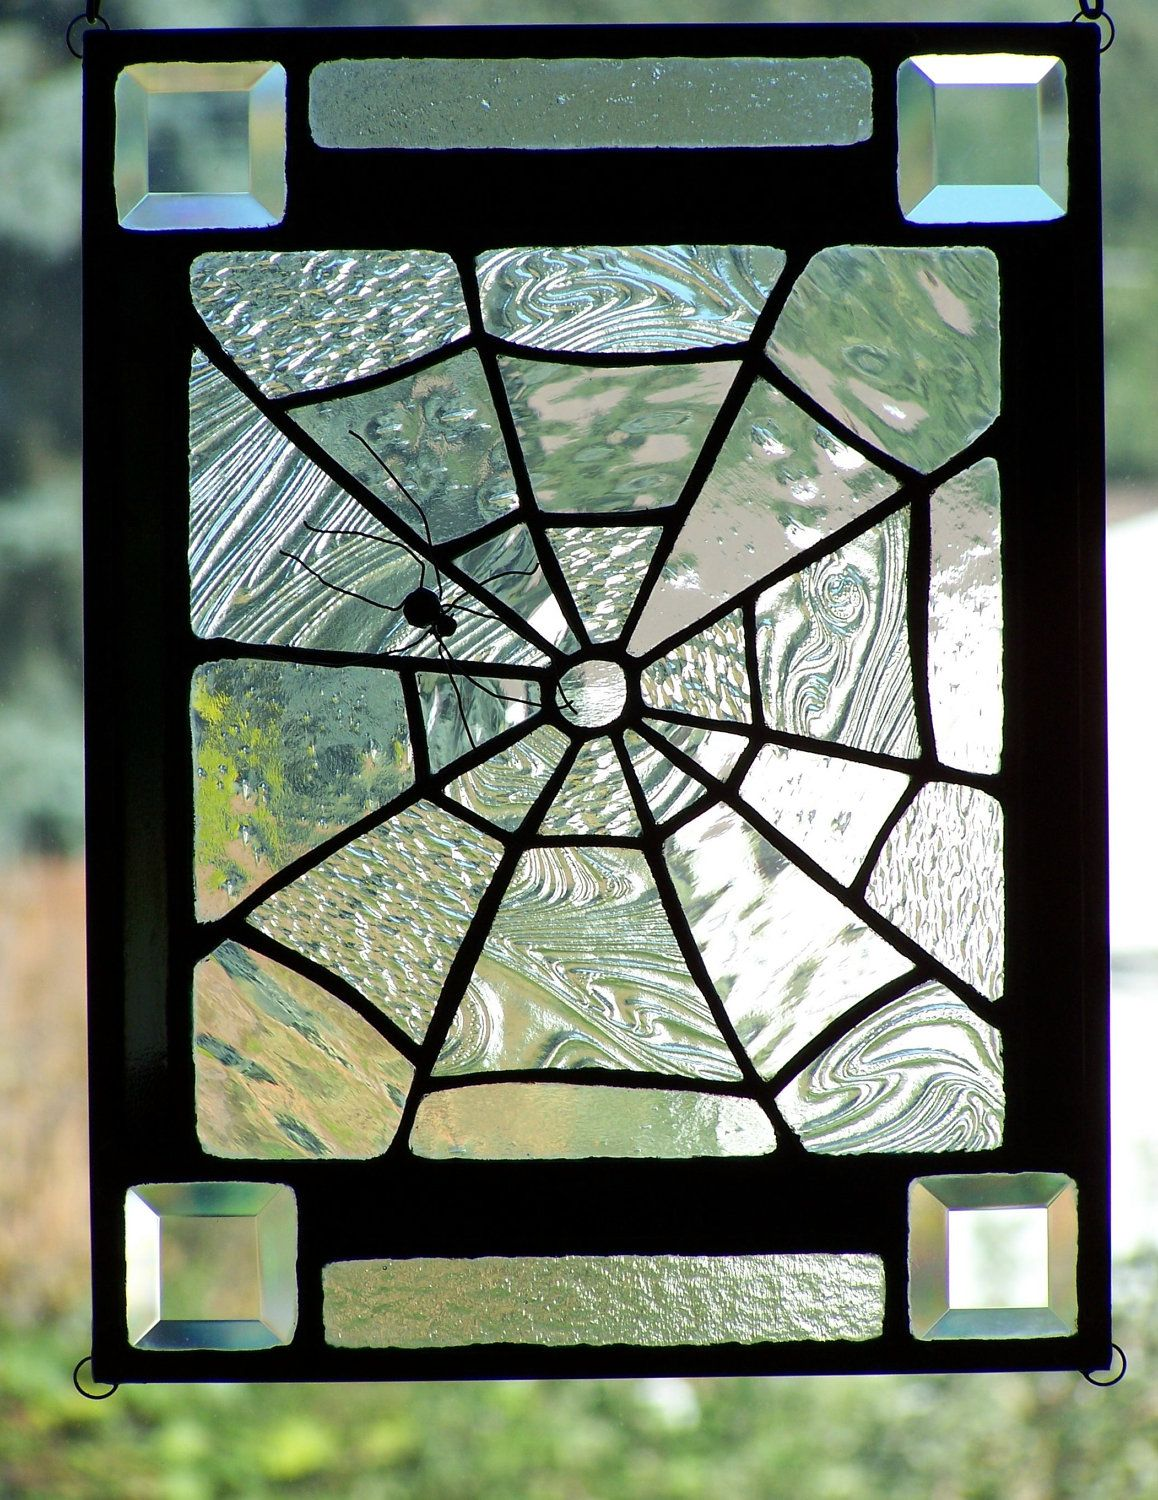 holloween stainglass | Halloween Stained Glass Spiderweb ...